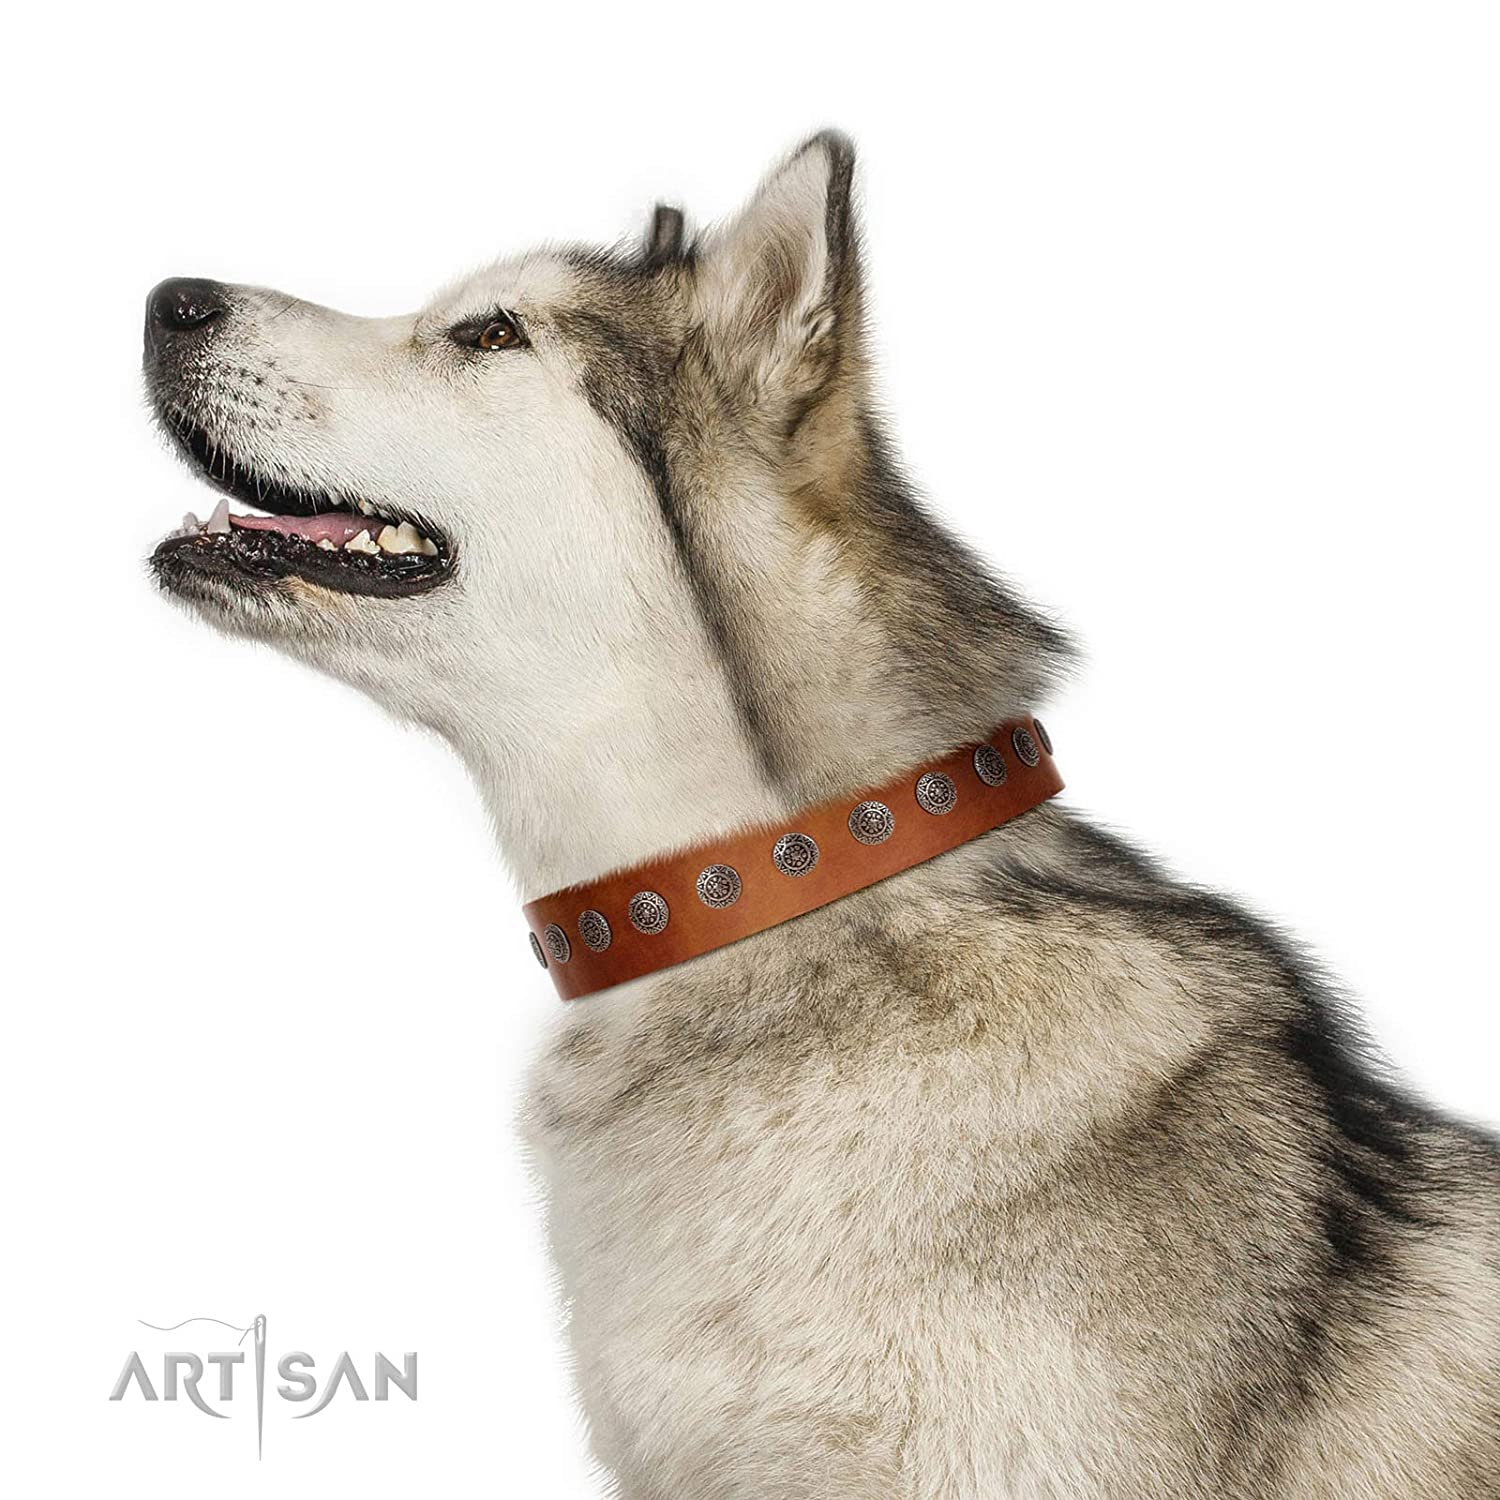 Fits for 24 inch (60cm) dog's neck size FDT Artisan 24 inch Lucky Star Handmade Designer Tan Leather Dog Collar with Round Plates 1 1 2 inch (40 cm) Wide Gift Box Included